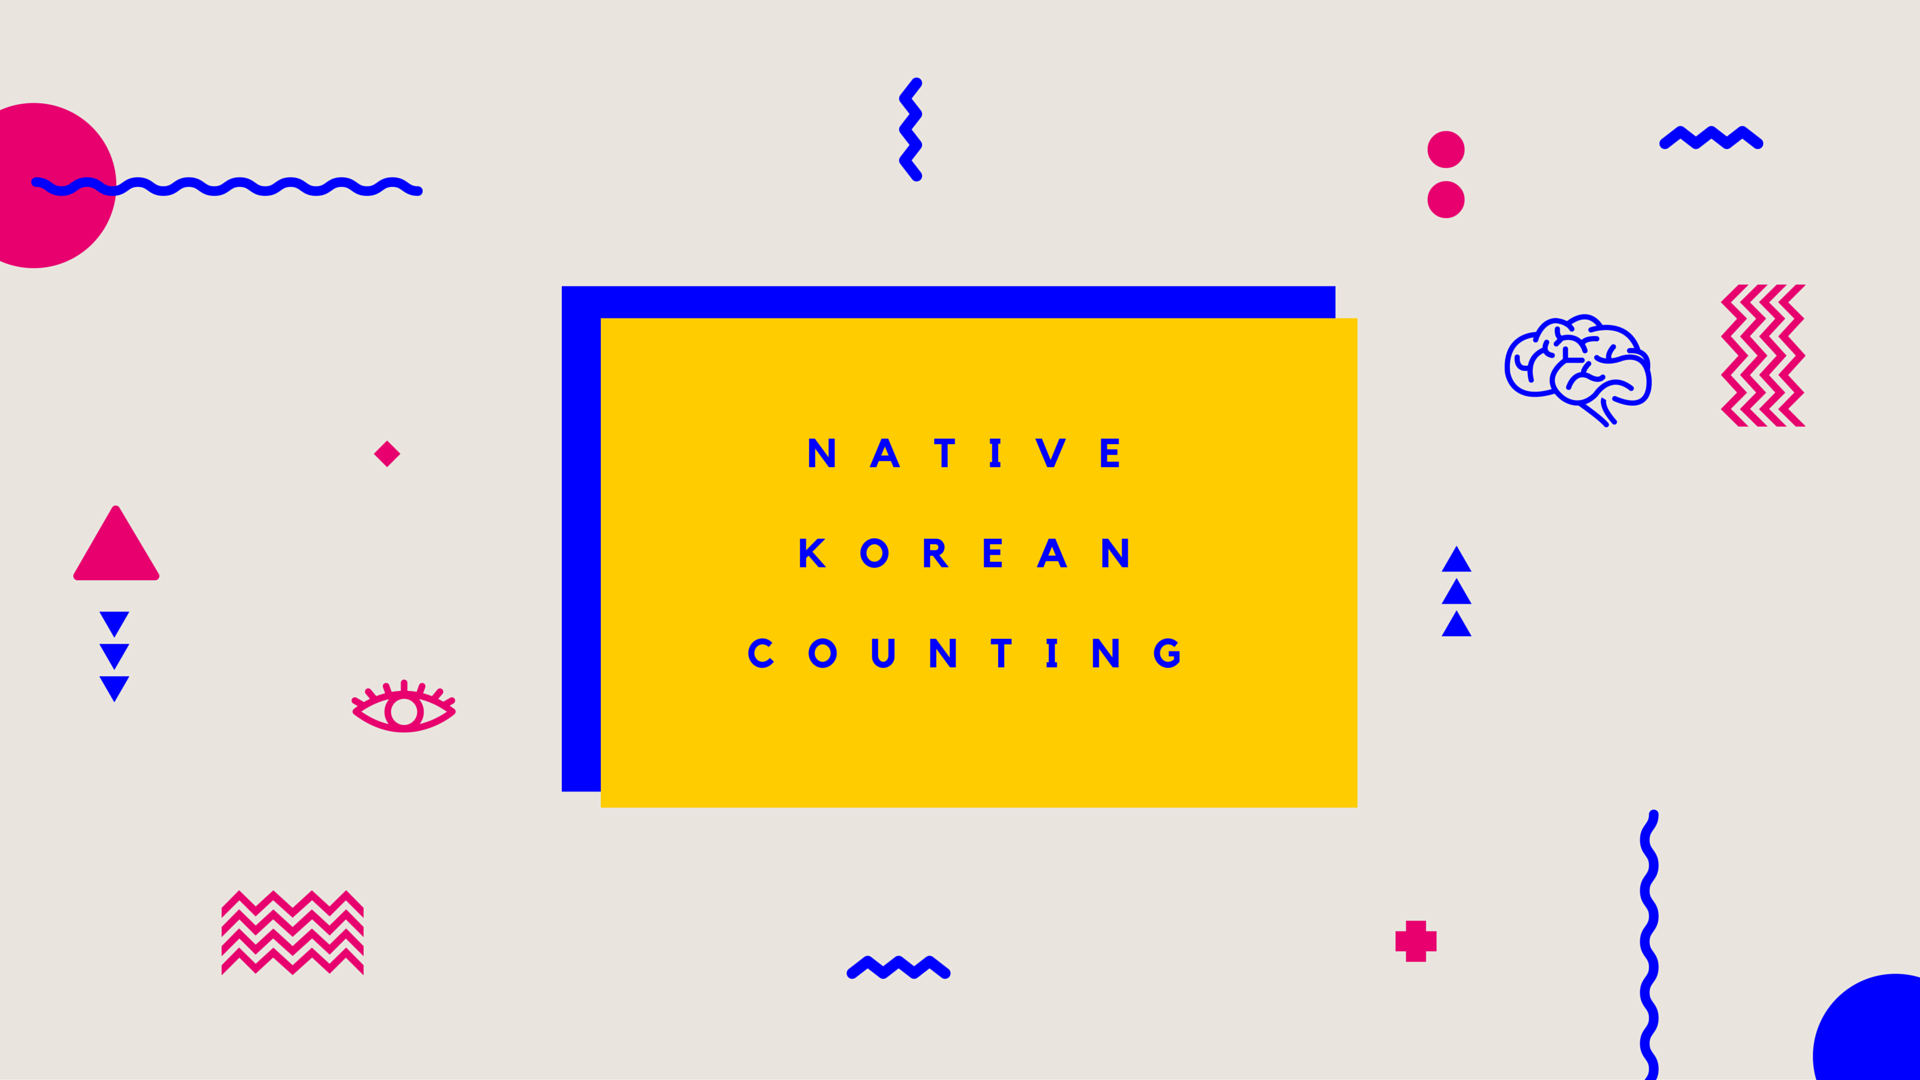 Counting in Korean - Native Korean Counting